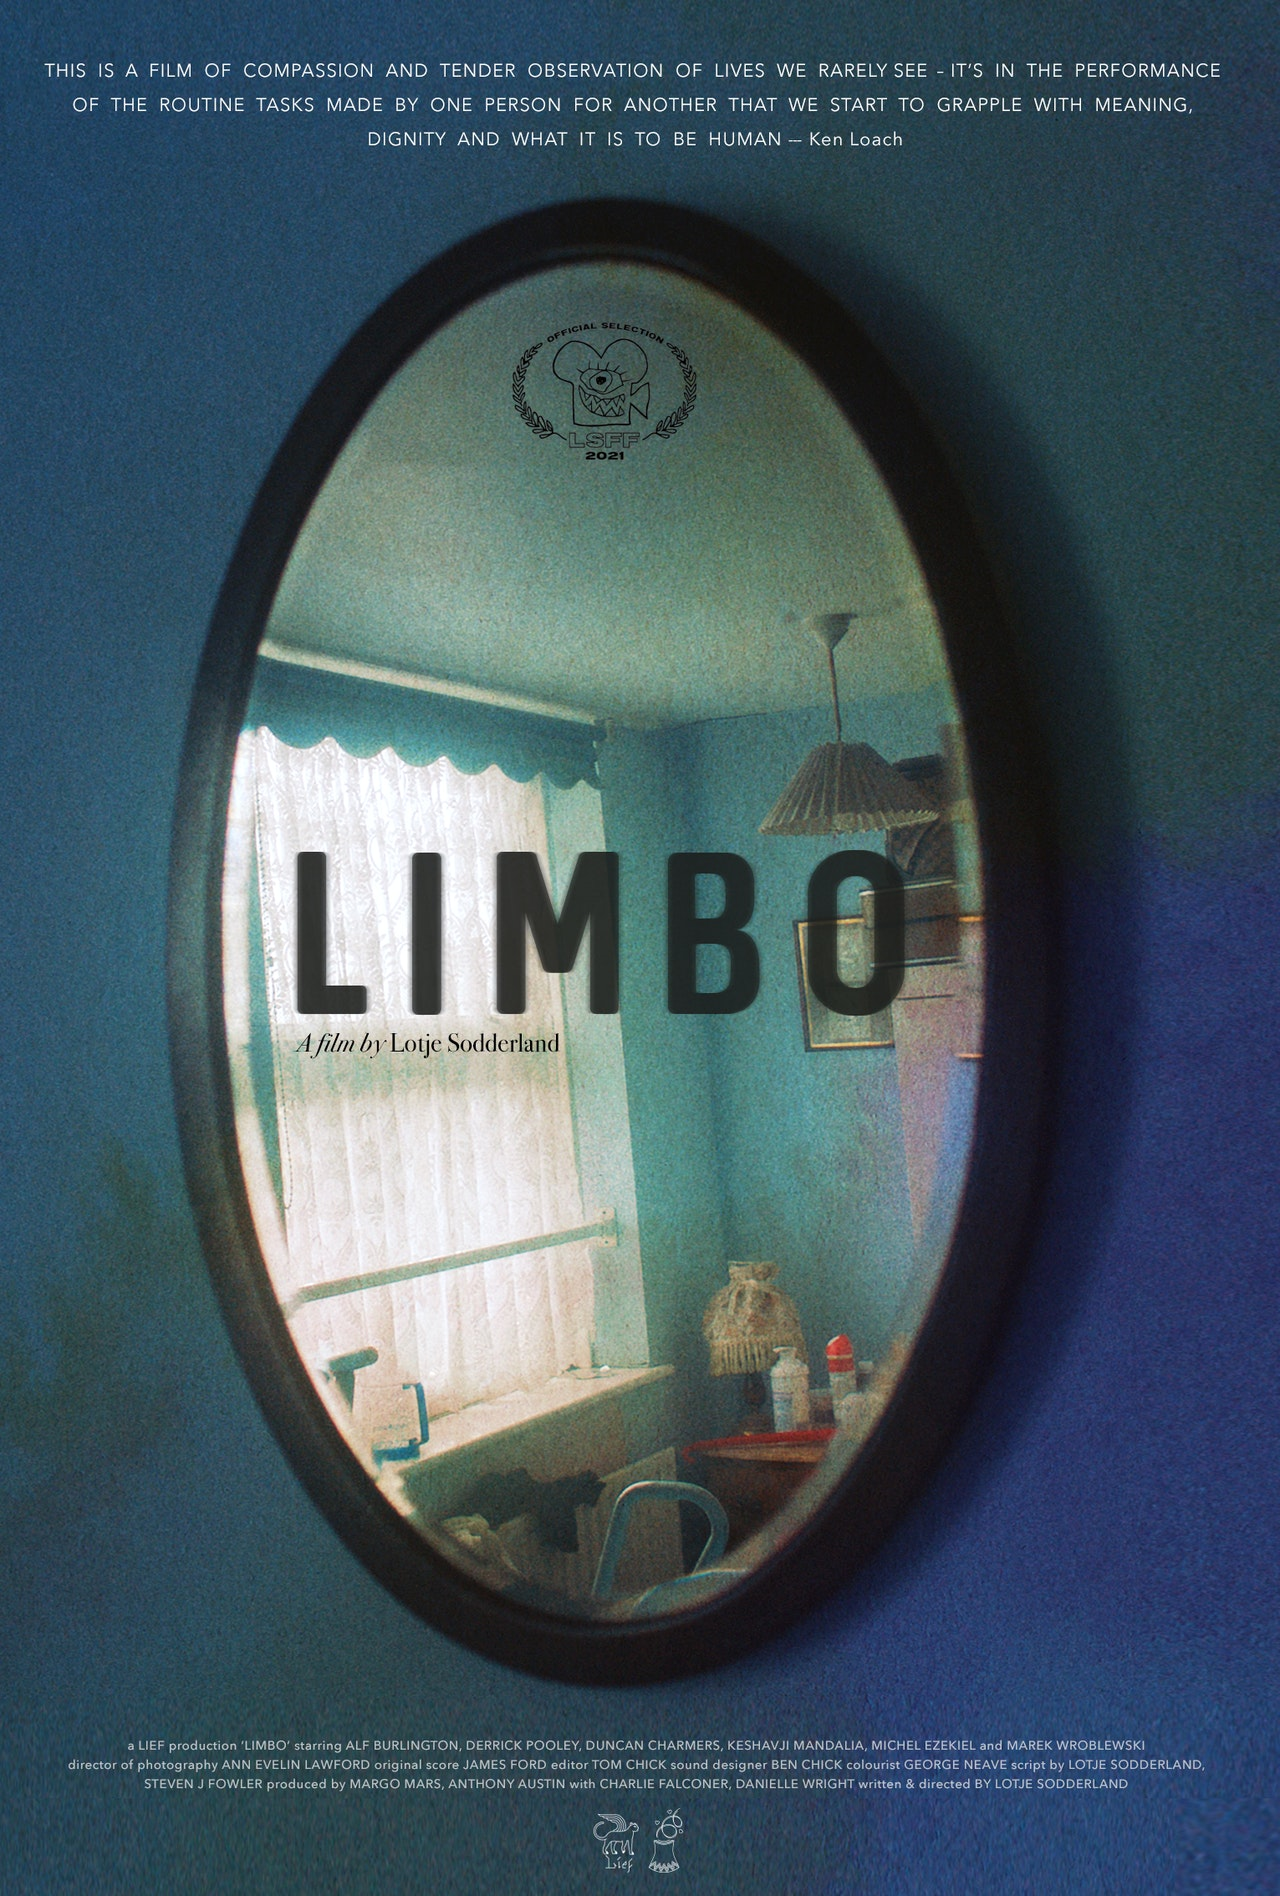 'Limbo' by Lotje Sodderland joins the Official Selection at BAFTA qualifying LSFF.